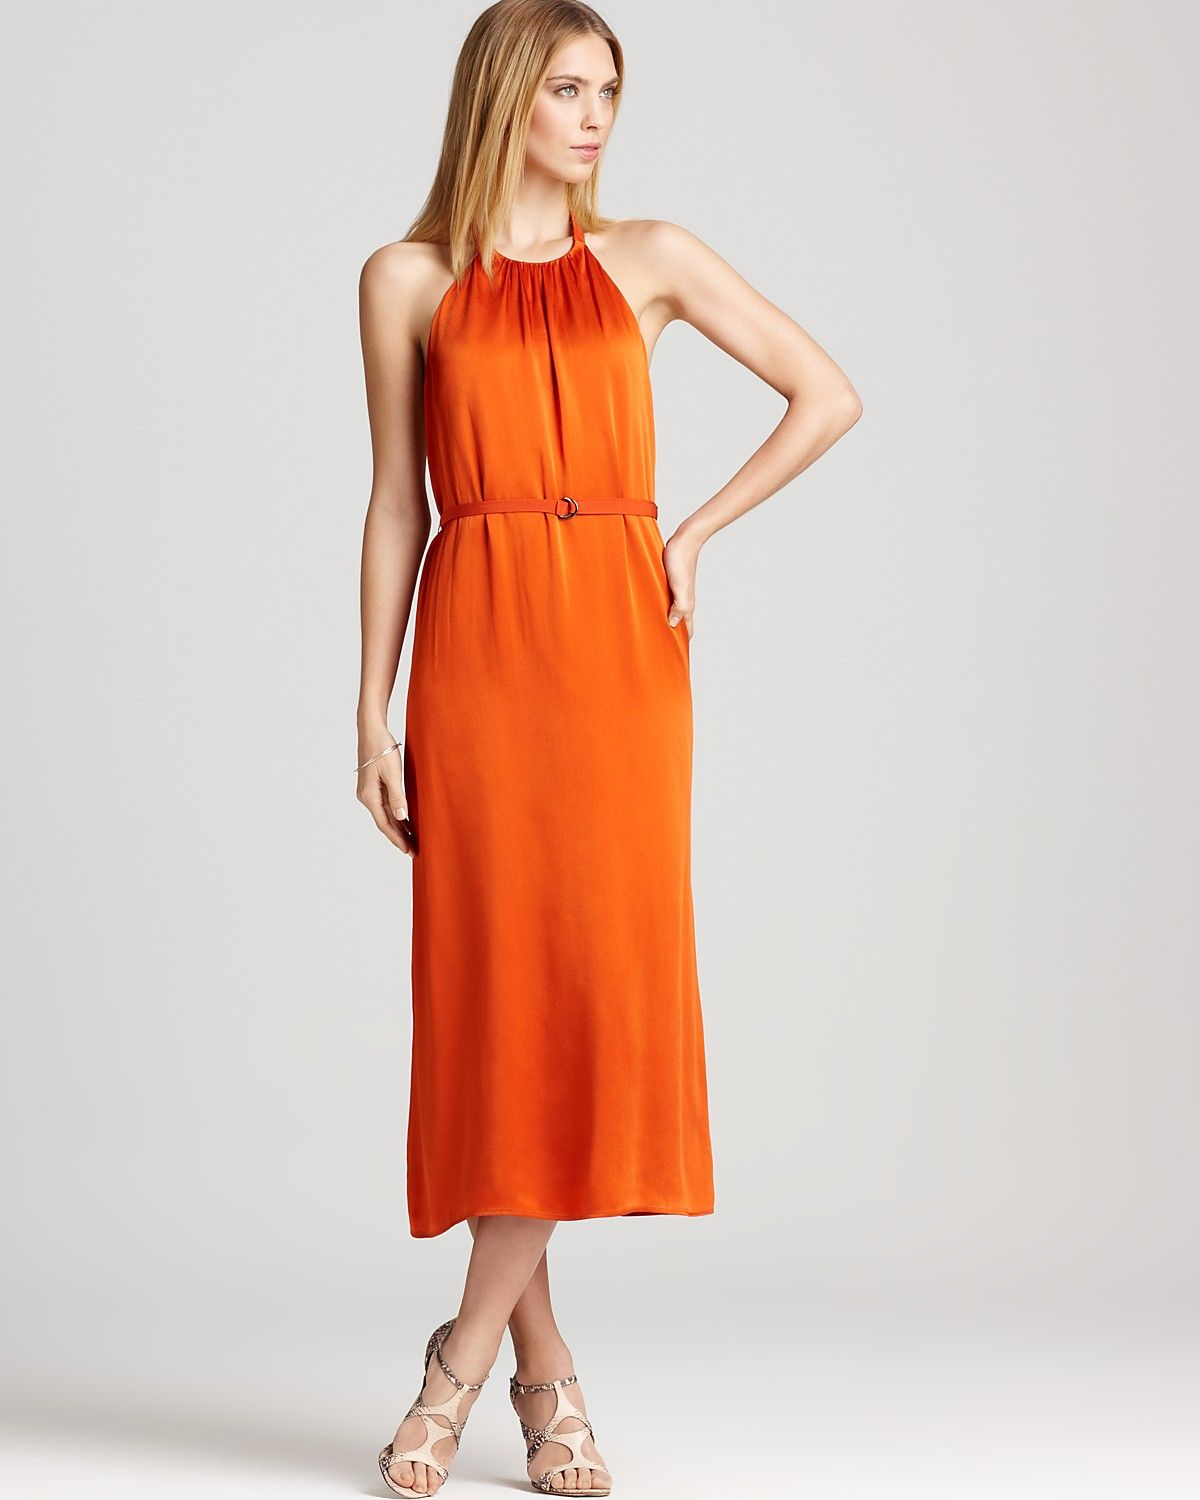 5e3fe81aa8b French Connection Dress - Flowing Halter